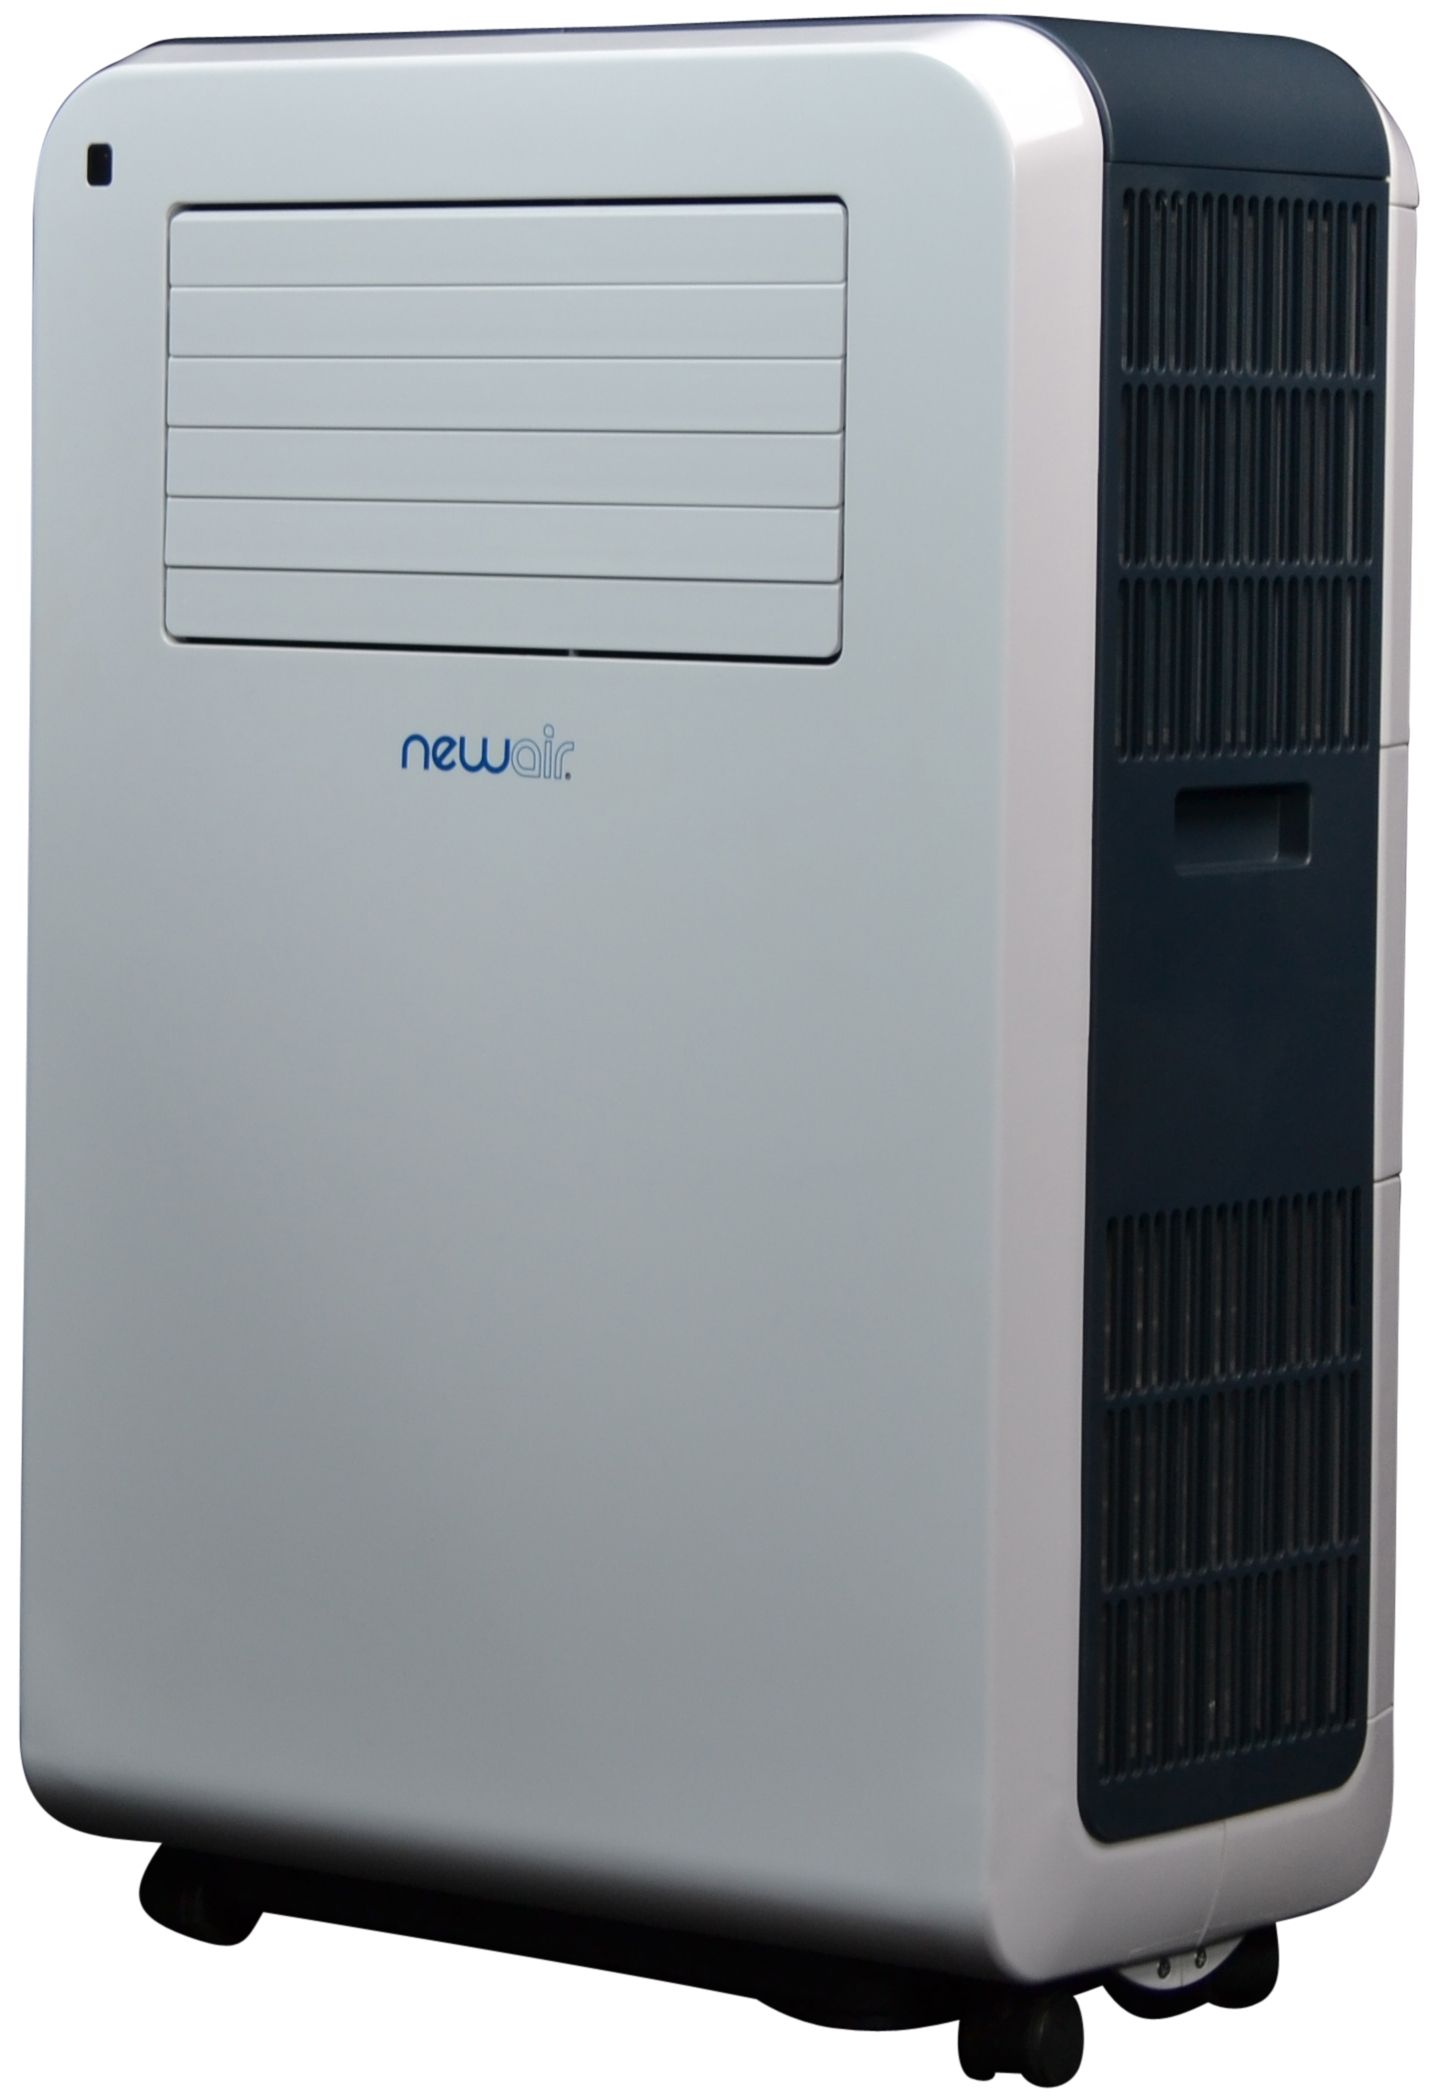 NewAir AC 12200H Portable Air Conditioner Heater #171D21